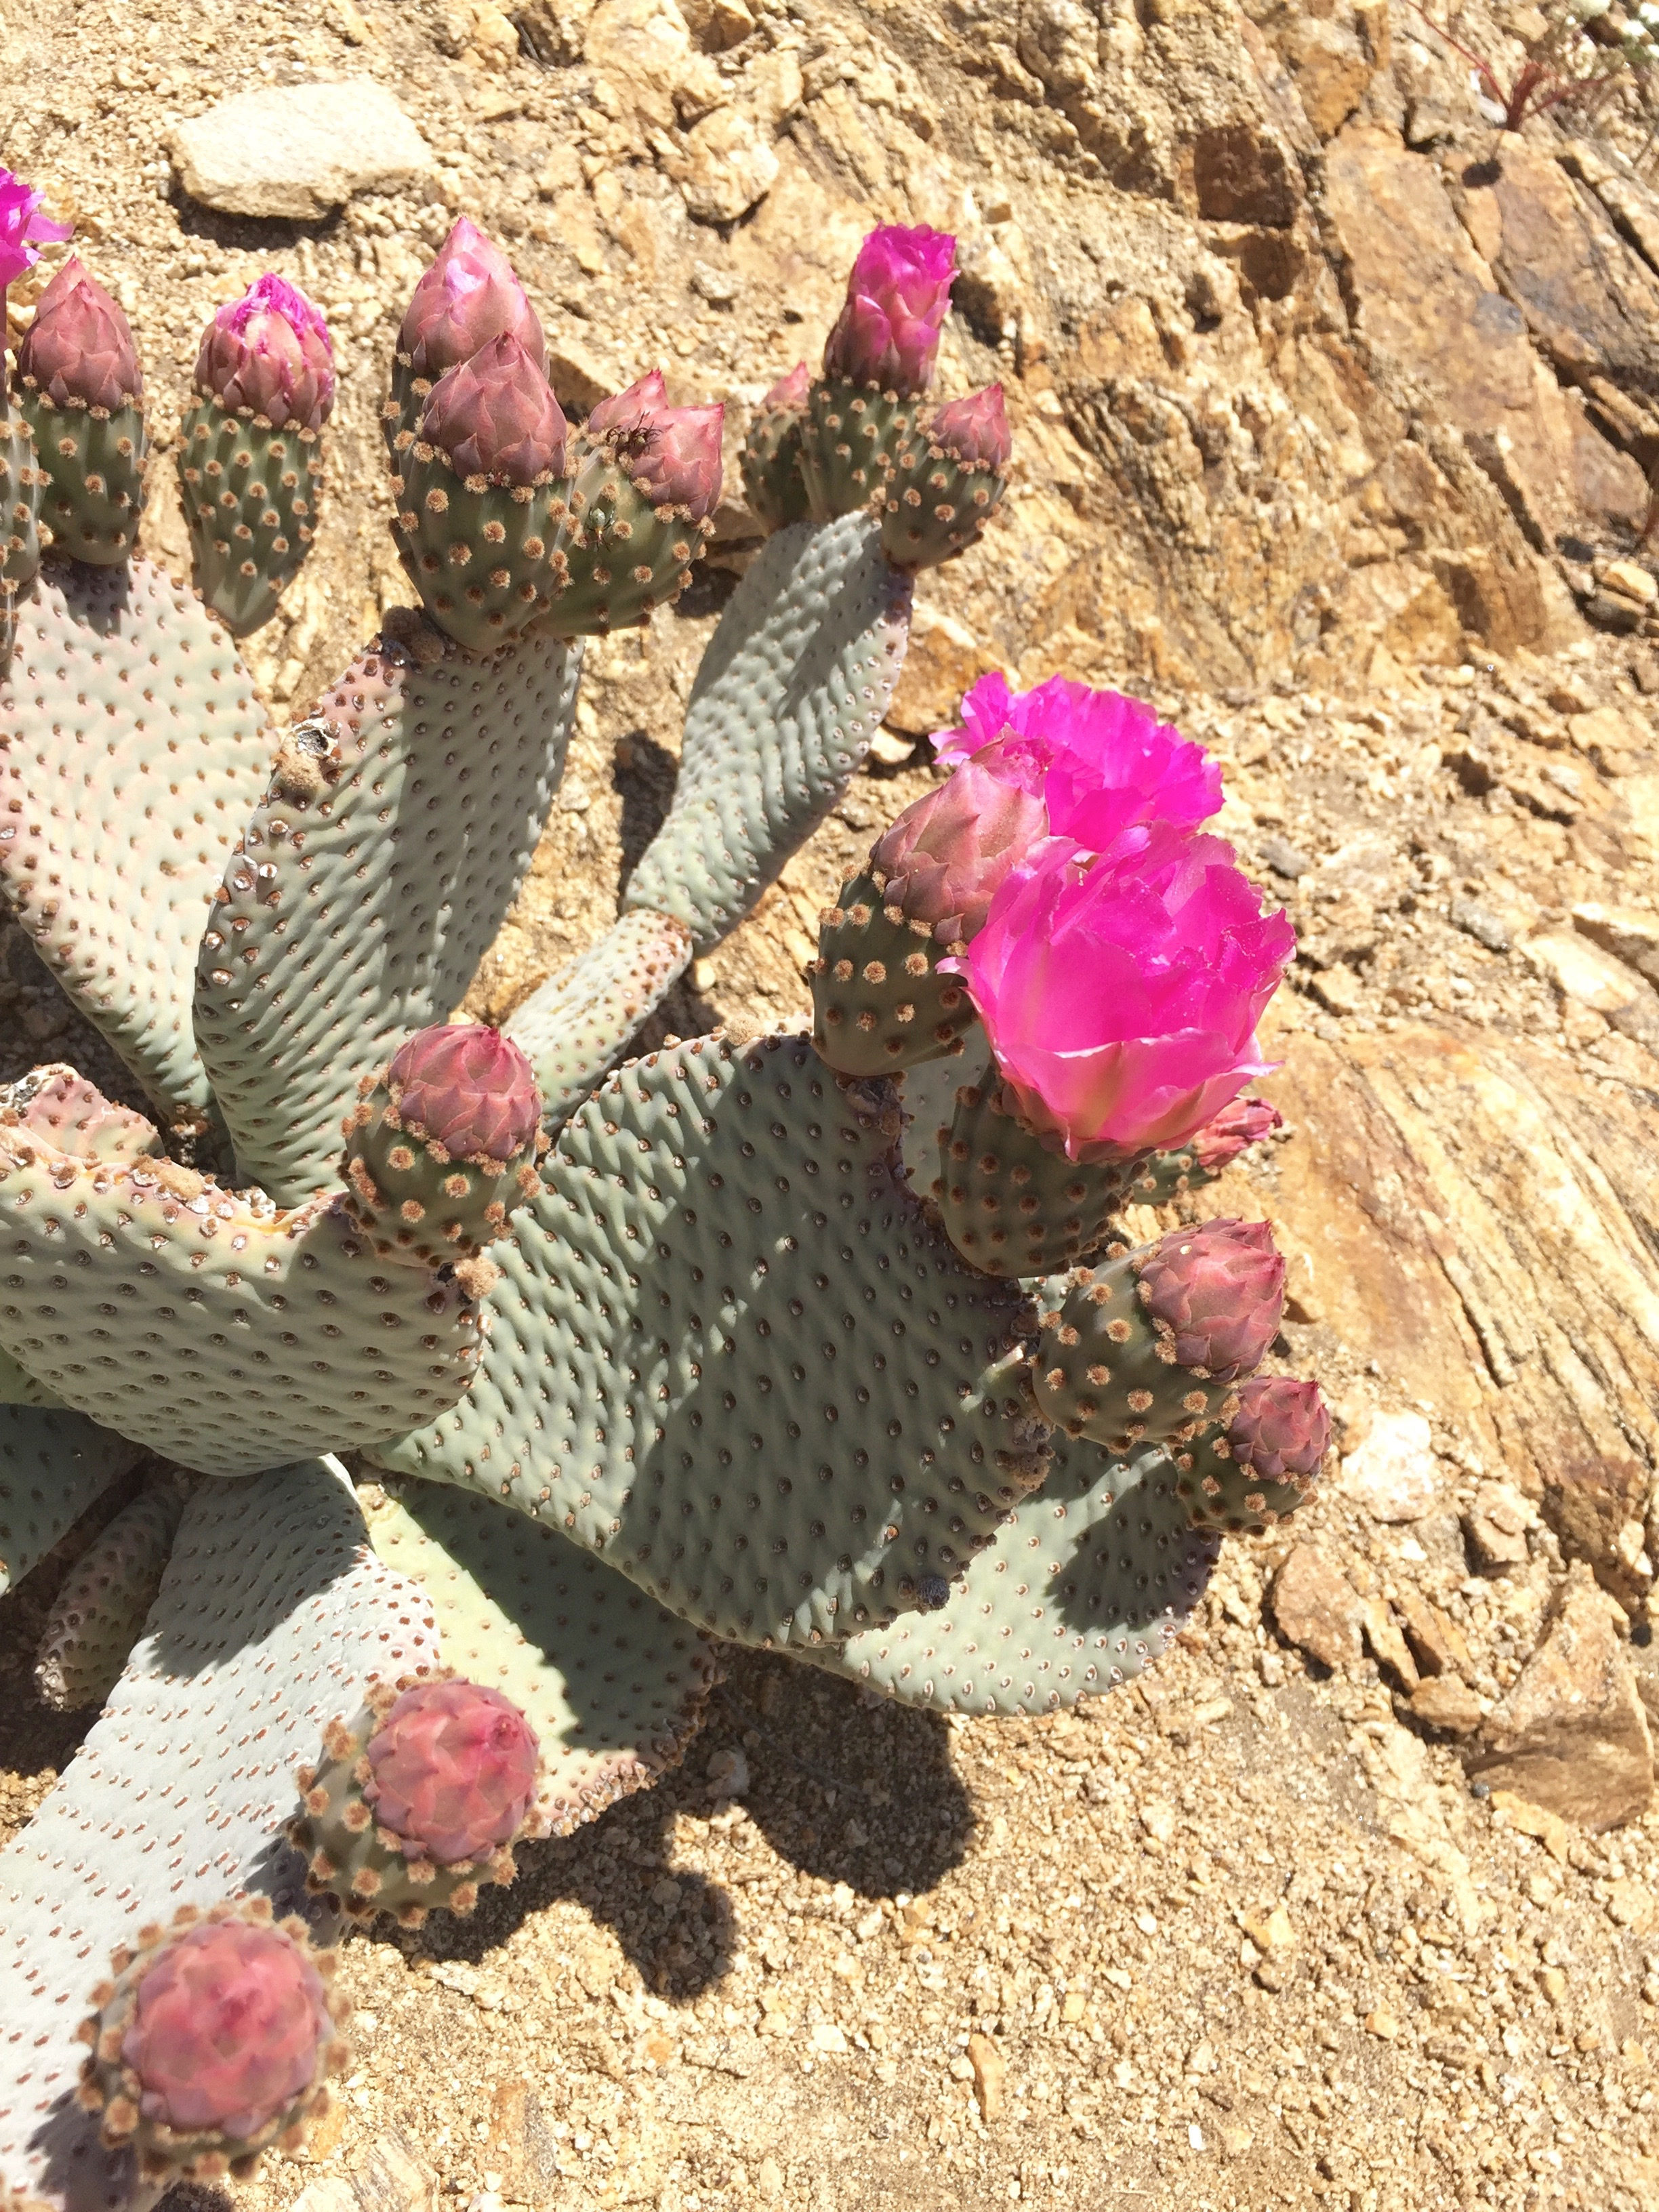 My favorite cactus - the Beavertail - the colors are amaze.